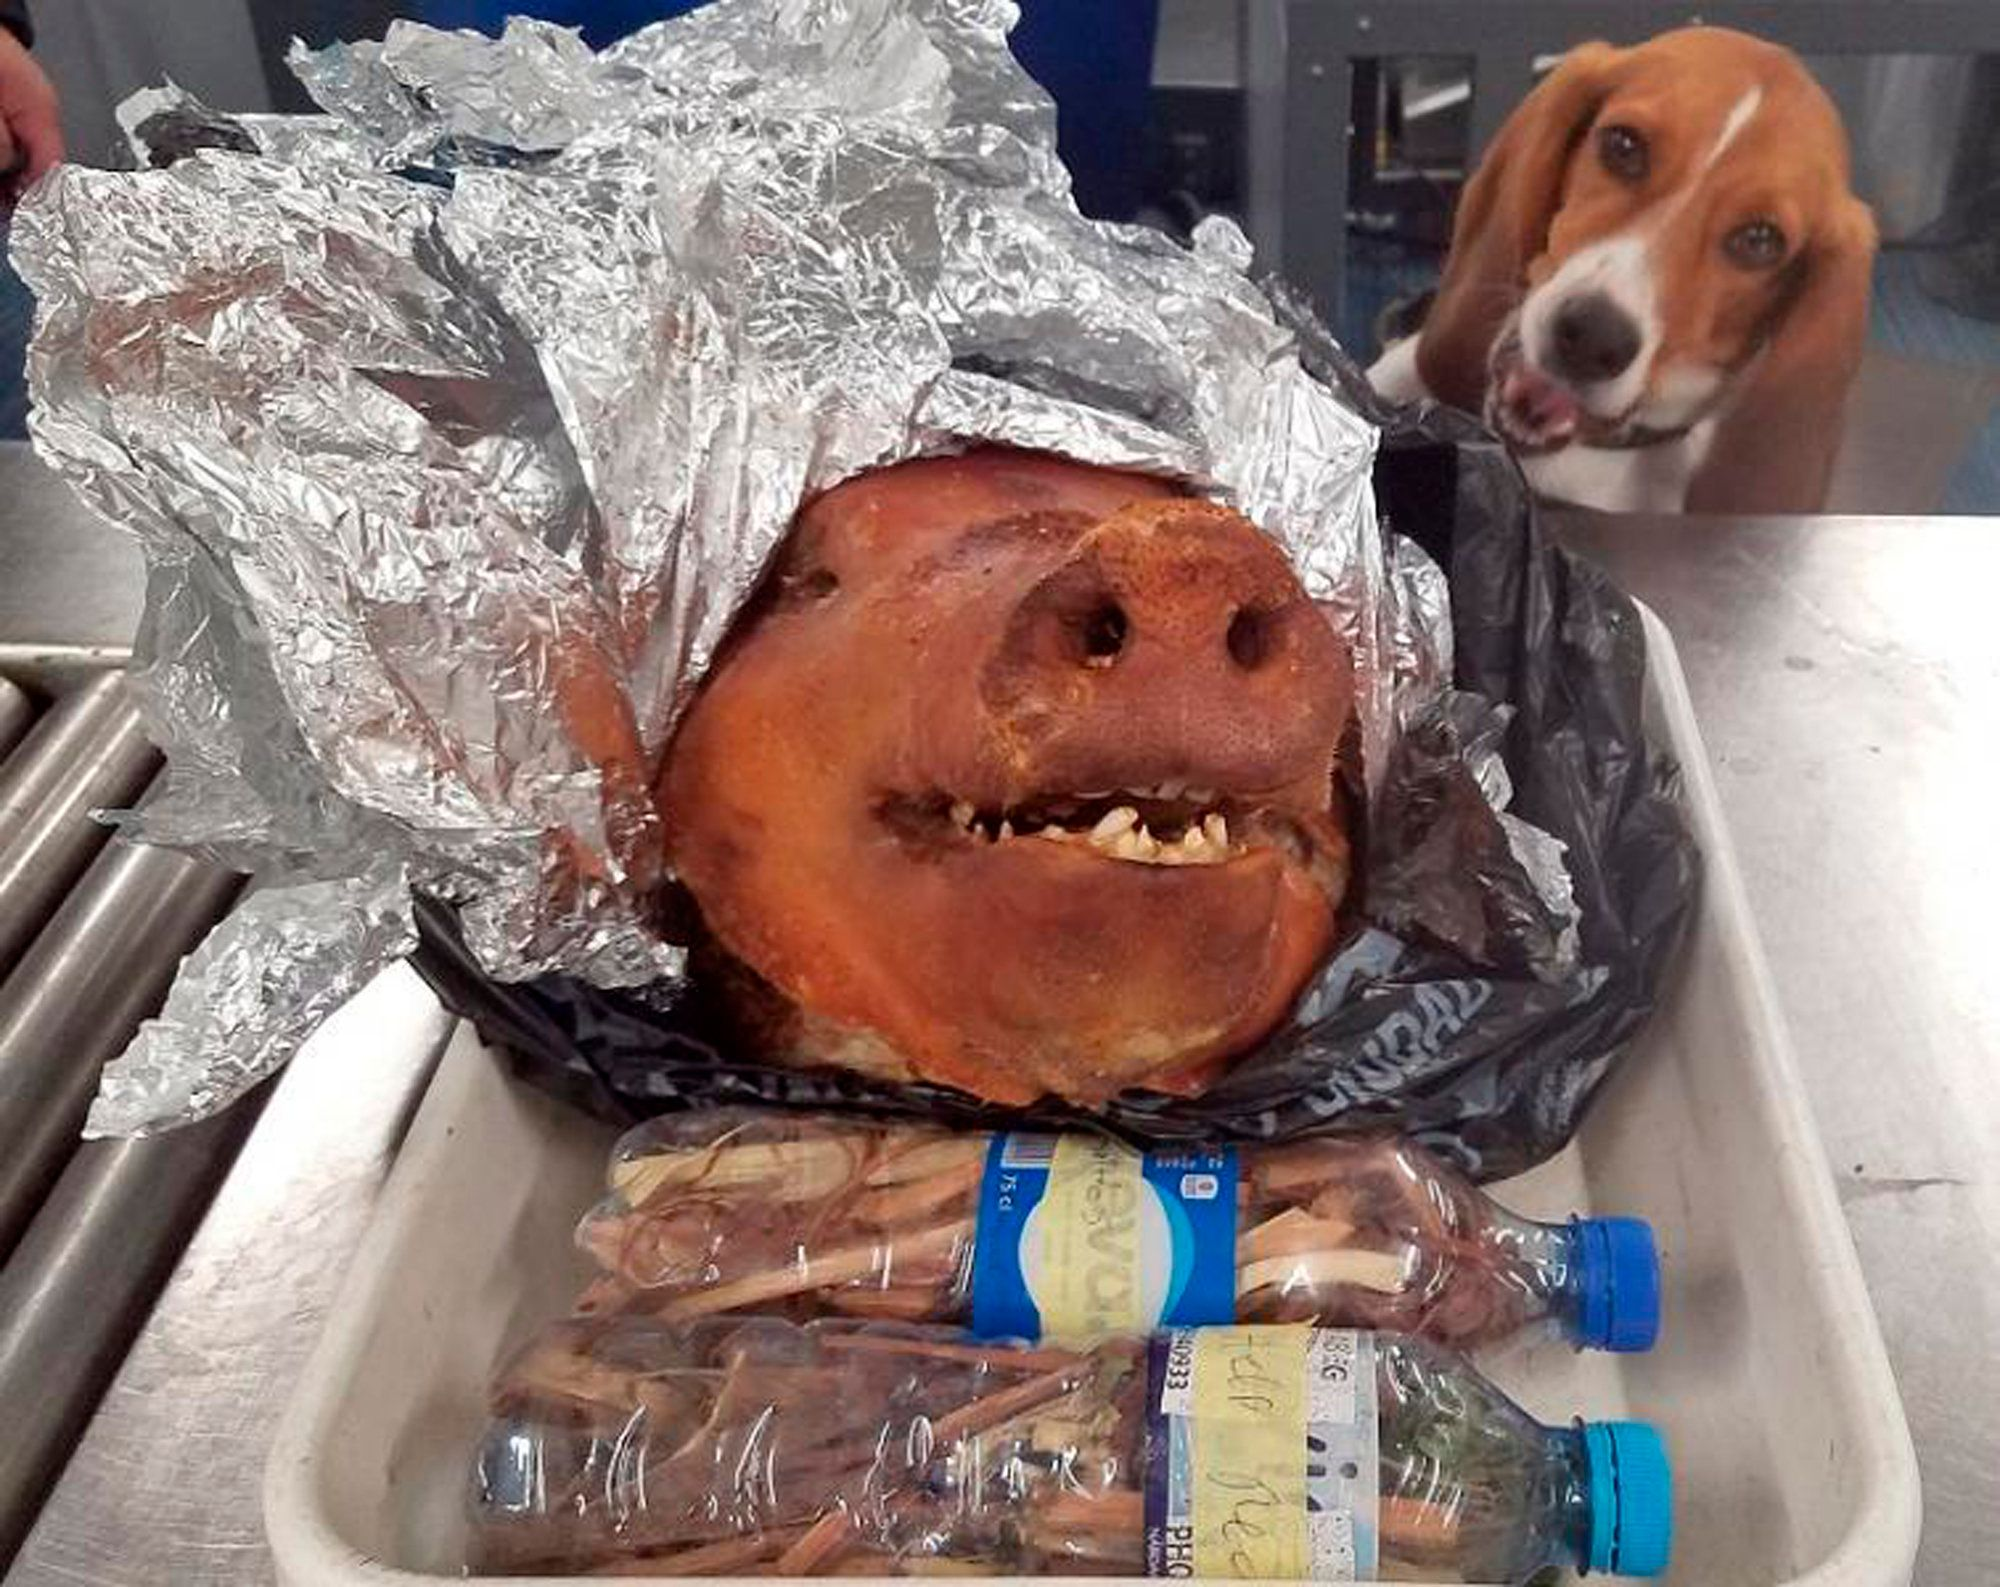 Intrepid Beagle Intercepts Roasted Pig In Atlanta